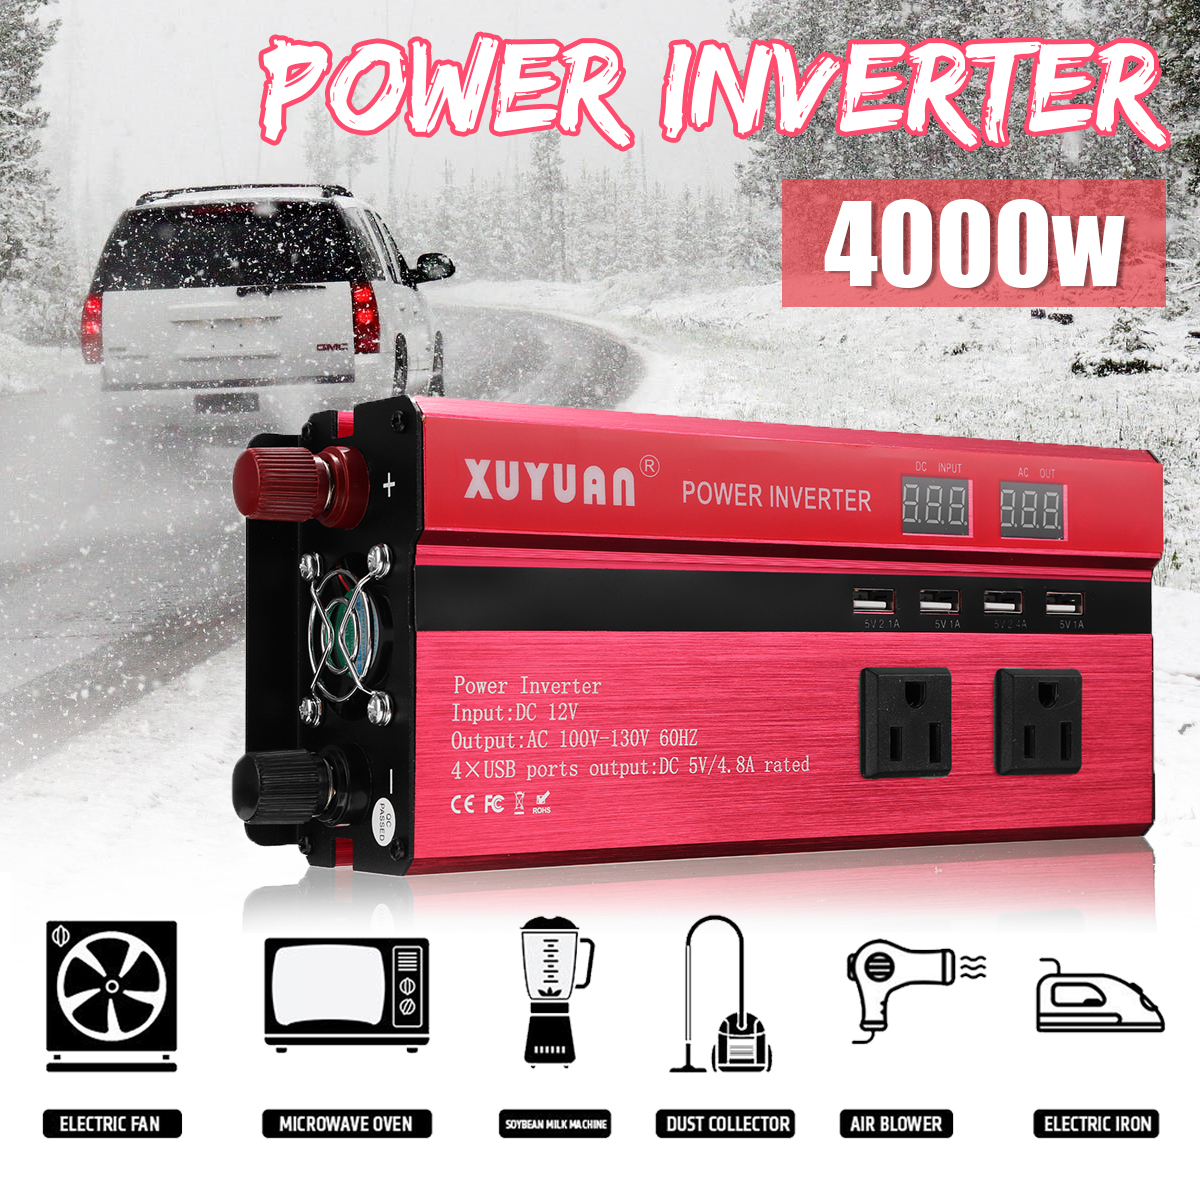 Inverter 12V 220V 4000W Peak Car Power Inverter Voltage Transformer Converter 12 220 Charger Solar Inversor 12V 220V LCD Display car inverter 12v 220v power inverters voltage transformer converter 12 220 1000w charger on display solar adapter 12v 220v dy104